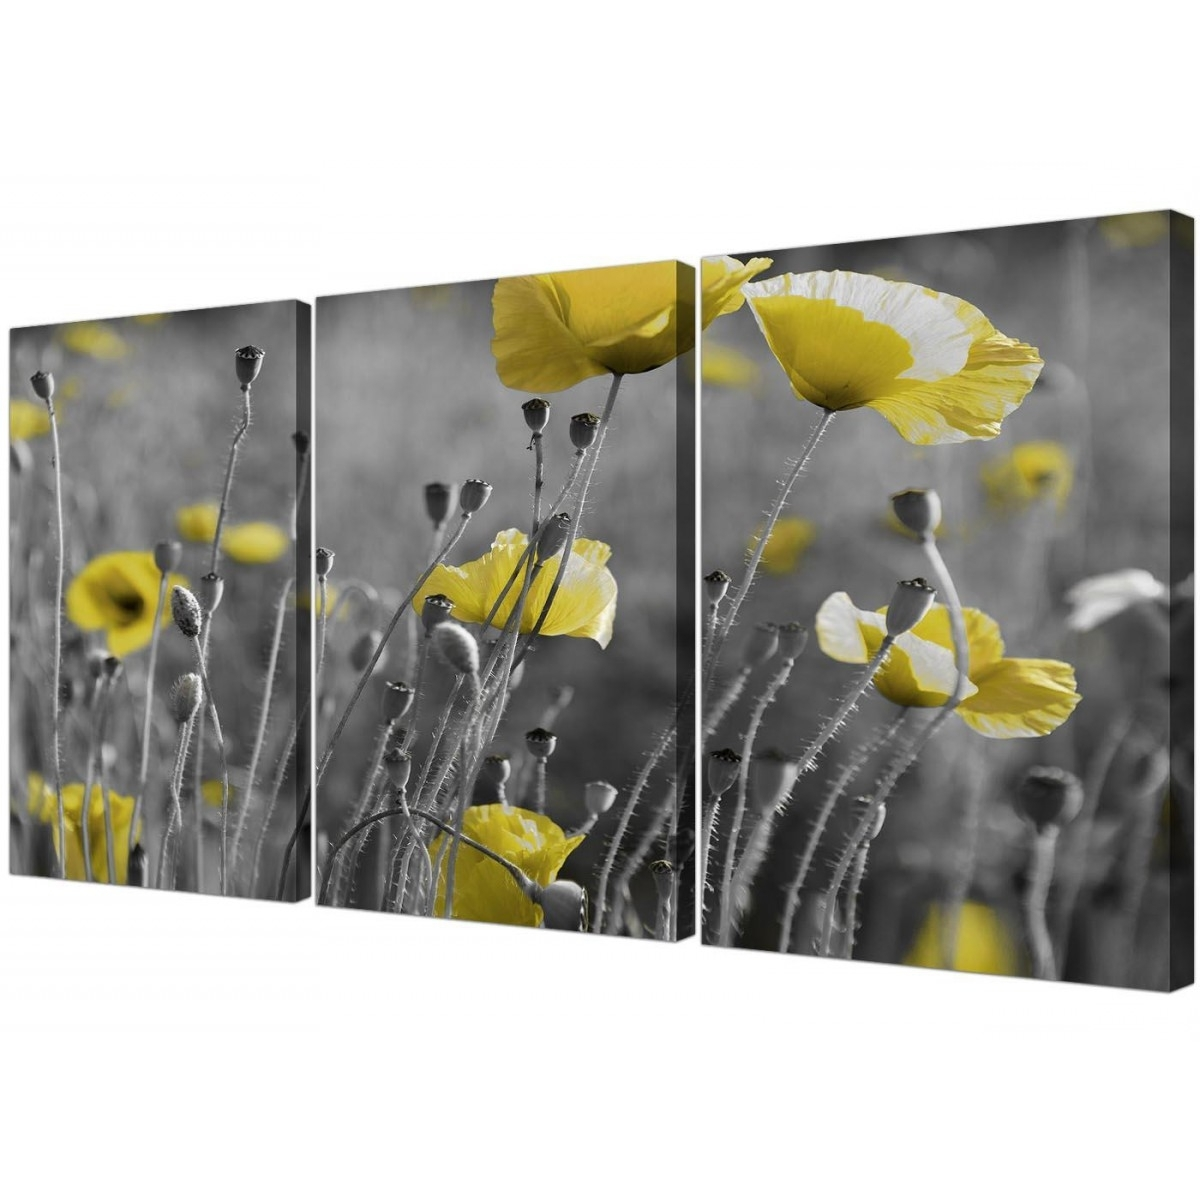 Black And White Canvas With Grey And Yellow Poppies Wall Art Prints Throughout Favorite Yellow And Grey Wall Art (View 3 of 15)